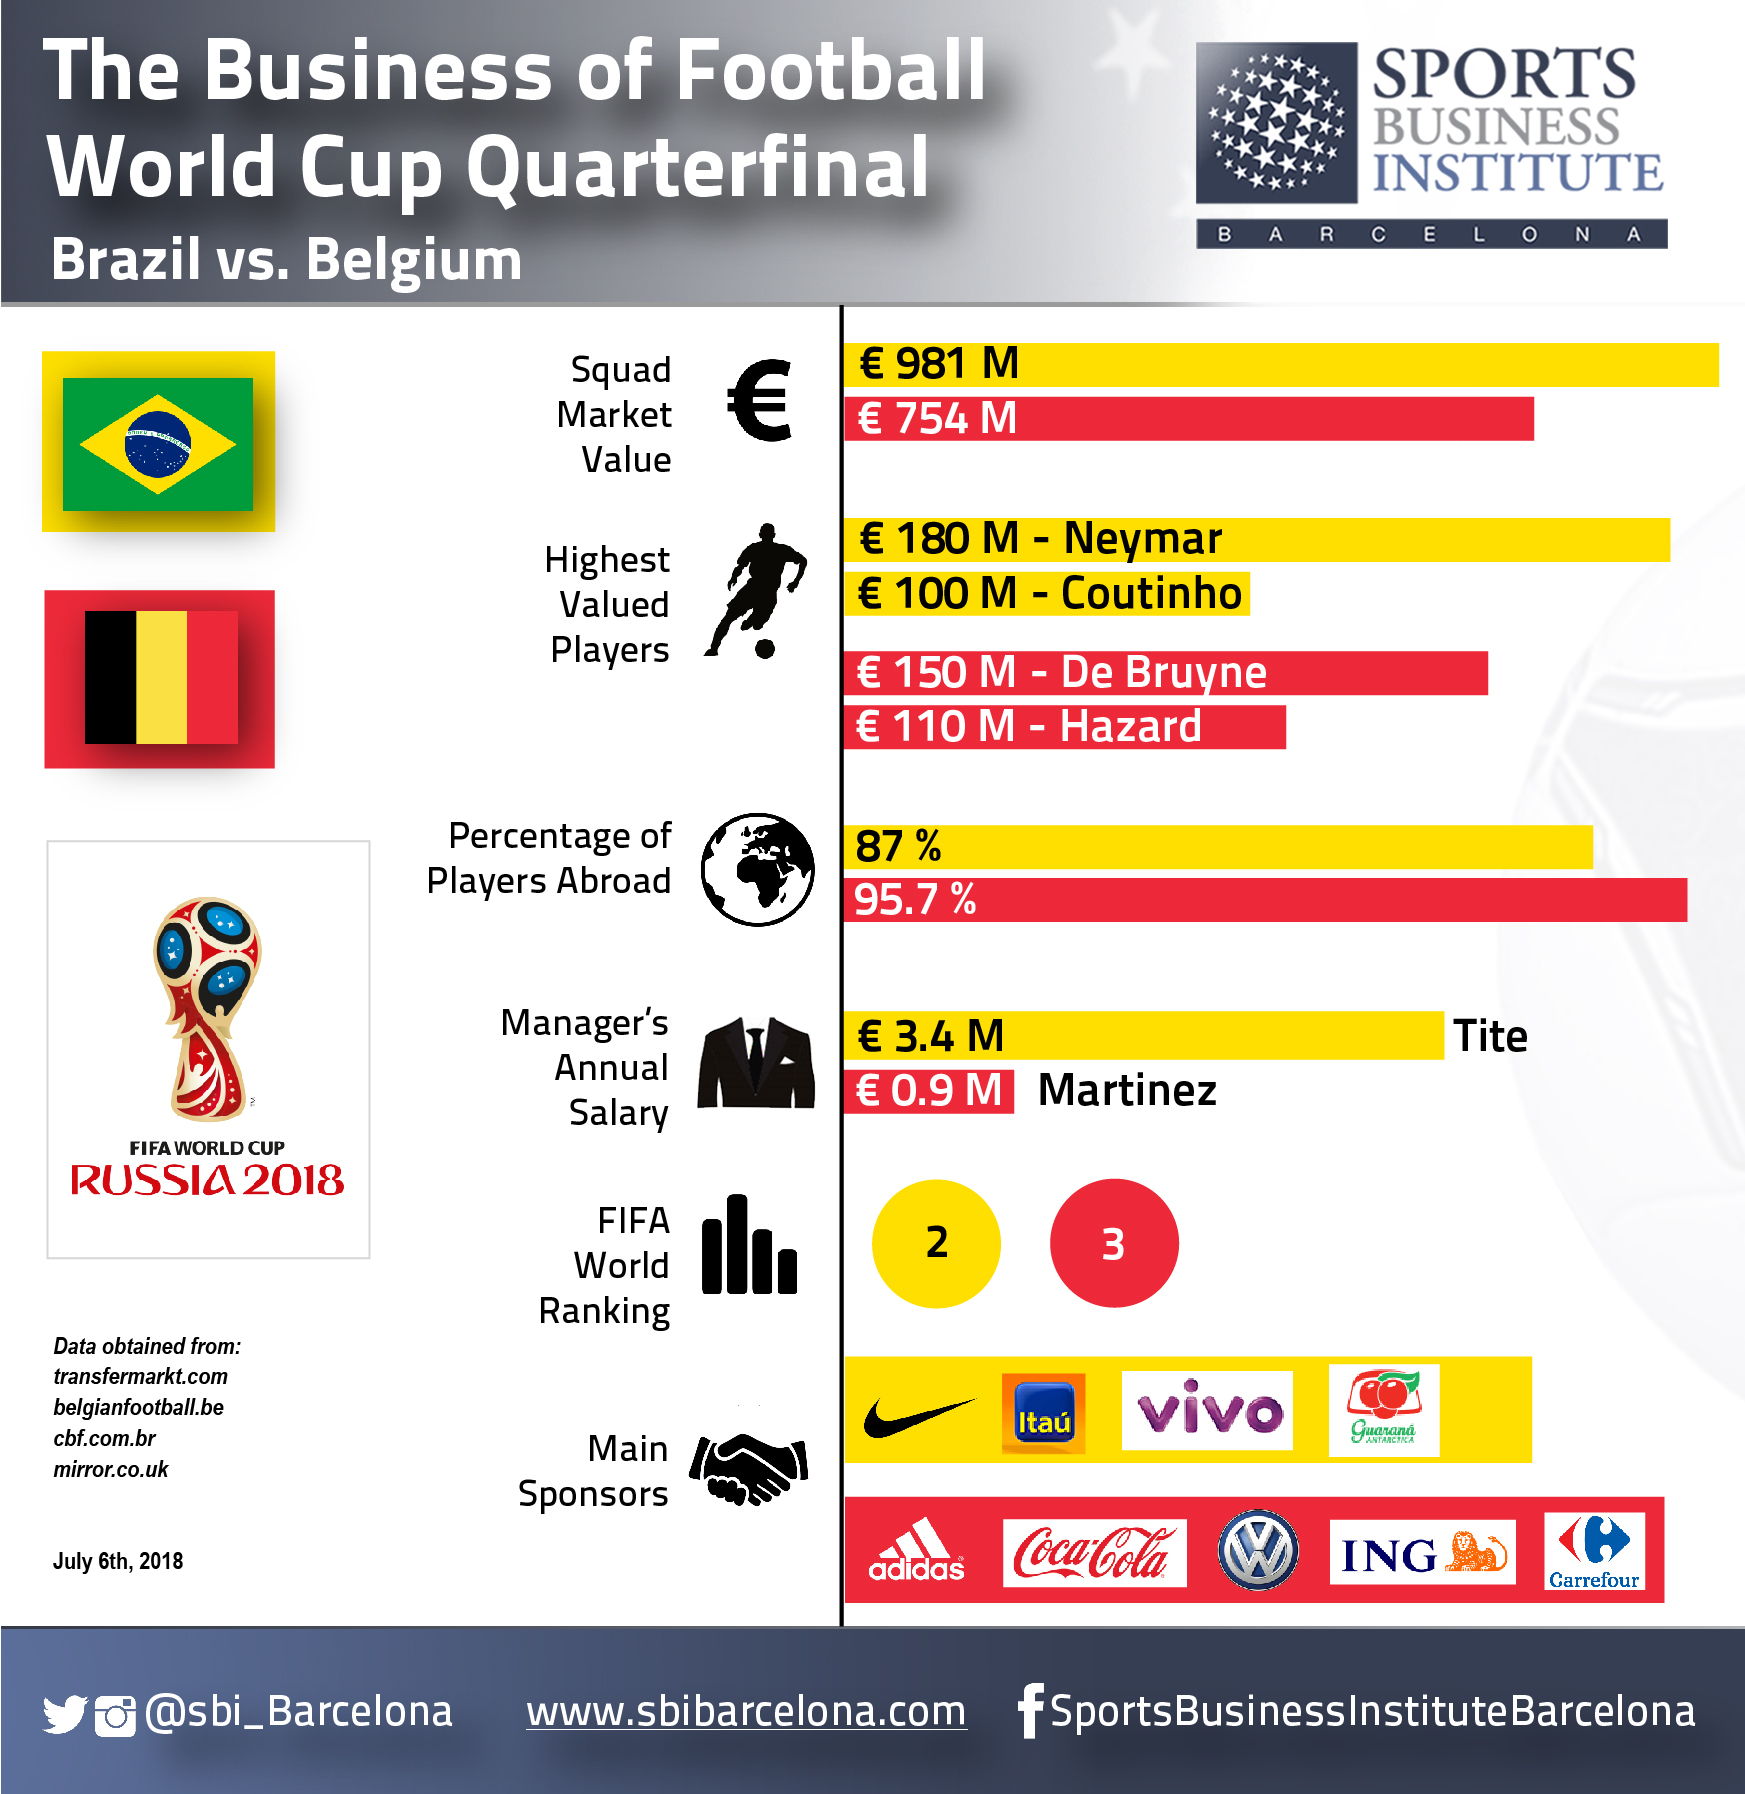 The Business of Football - World Cup Quarterfinals | Sports